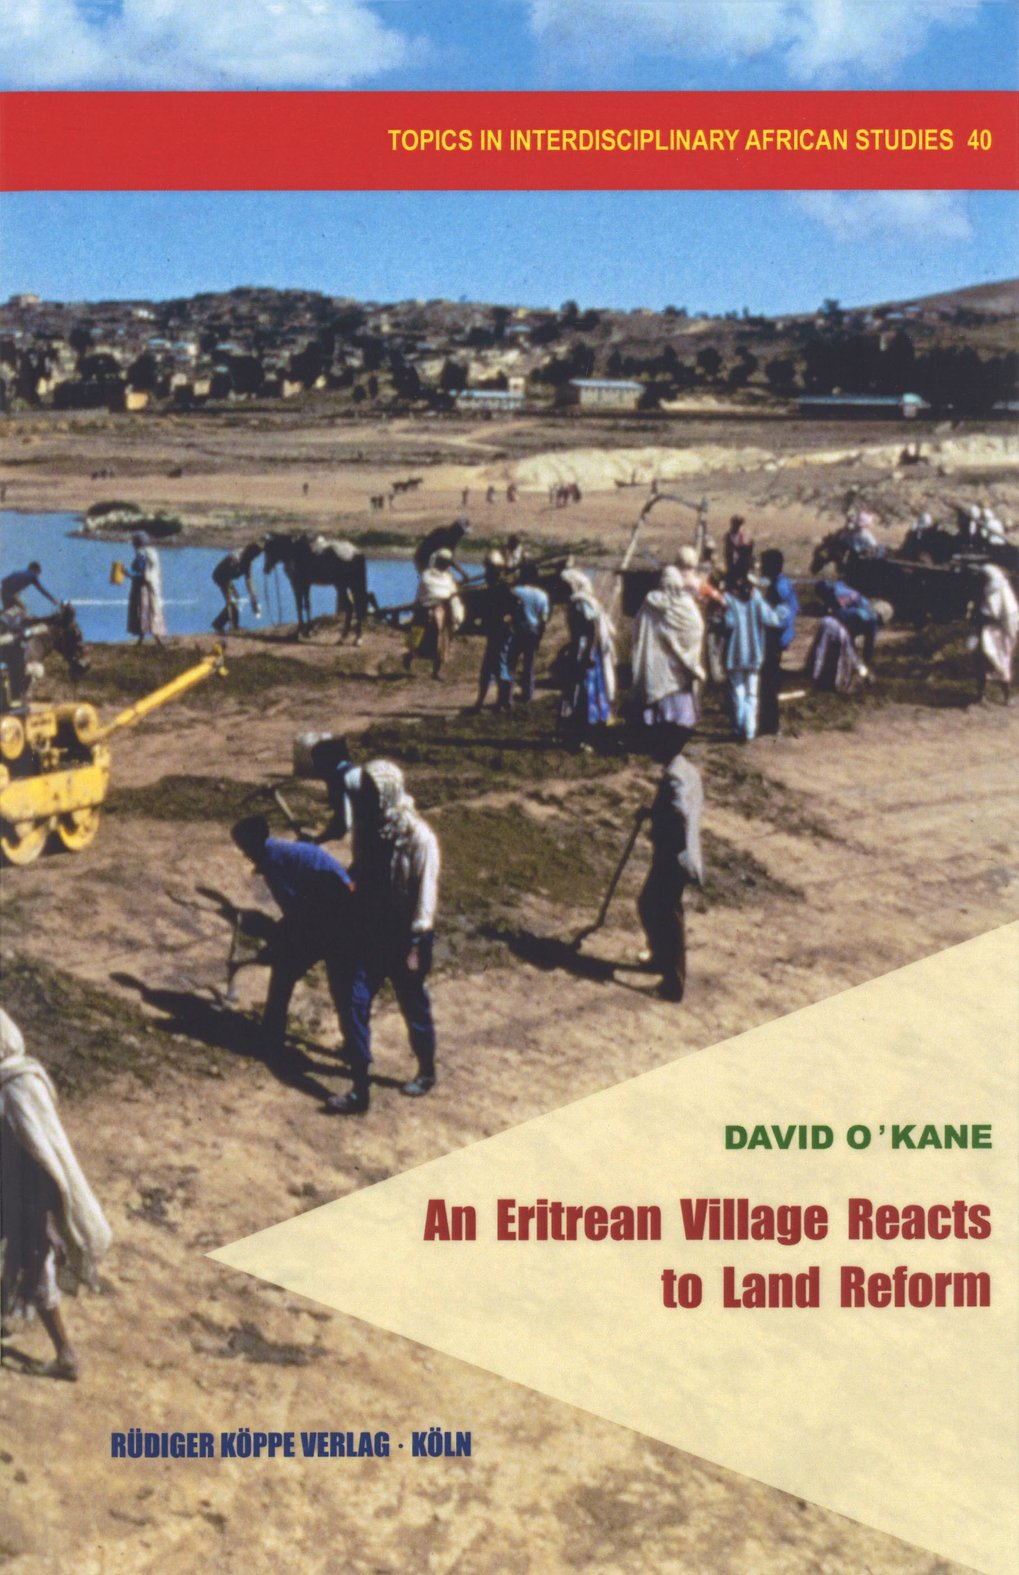 An Eritrean Village Reacts to Land Reform